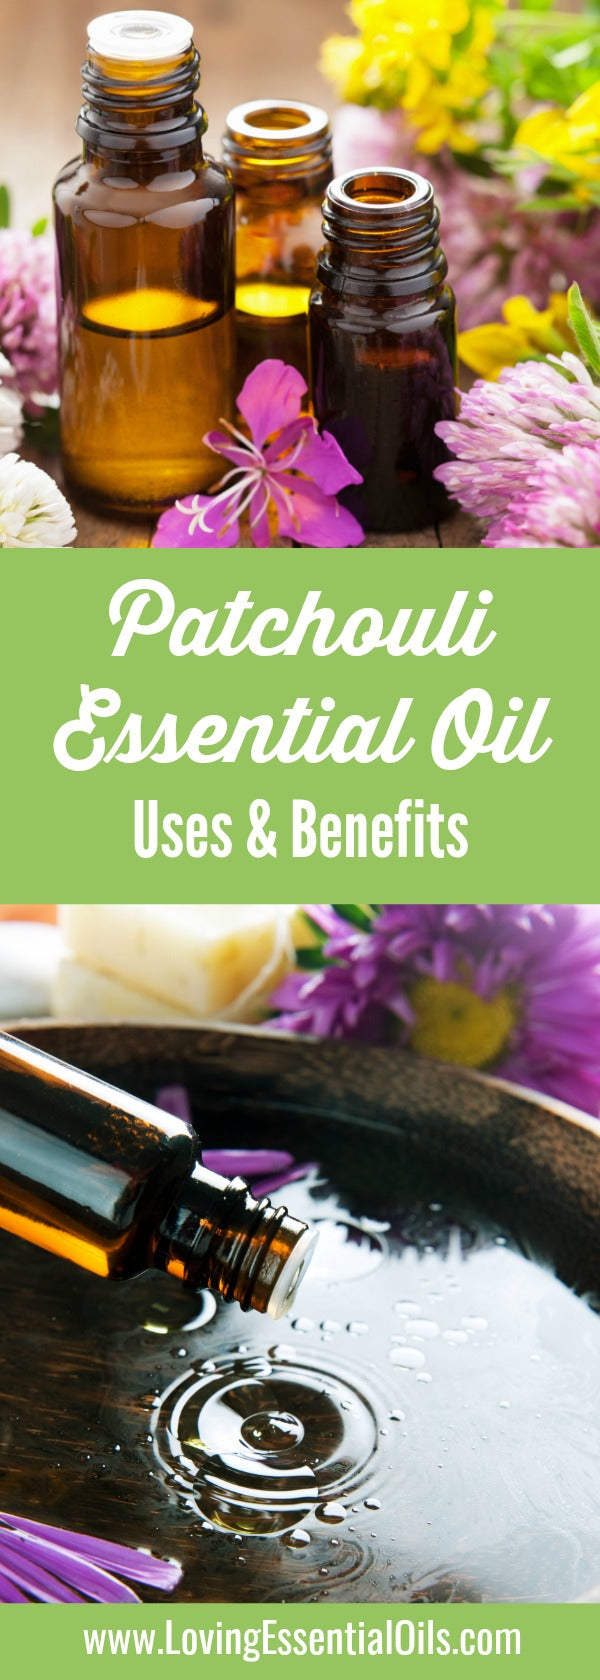 Best Patchouli Oil Uses & Benefits by Loving Essential Oils